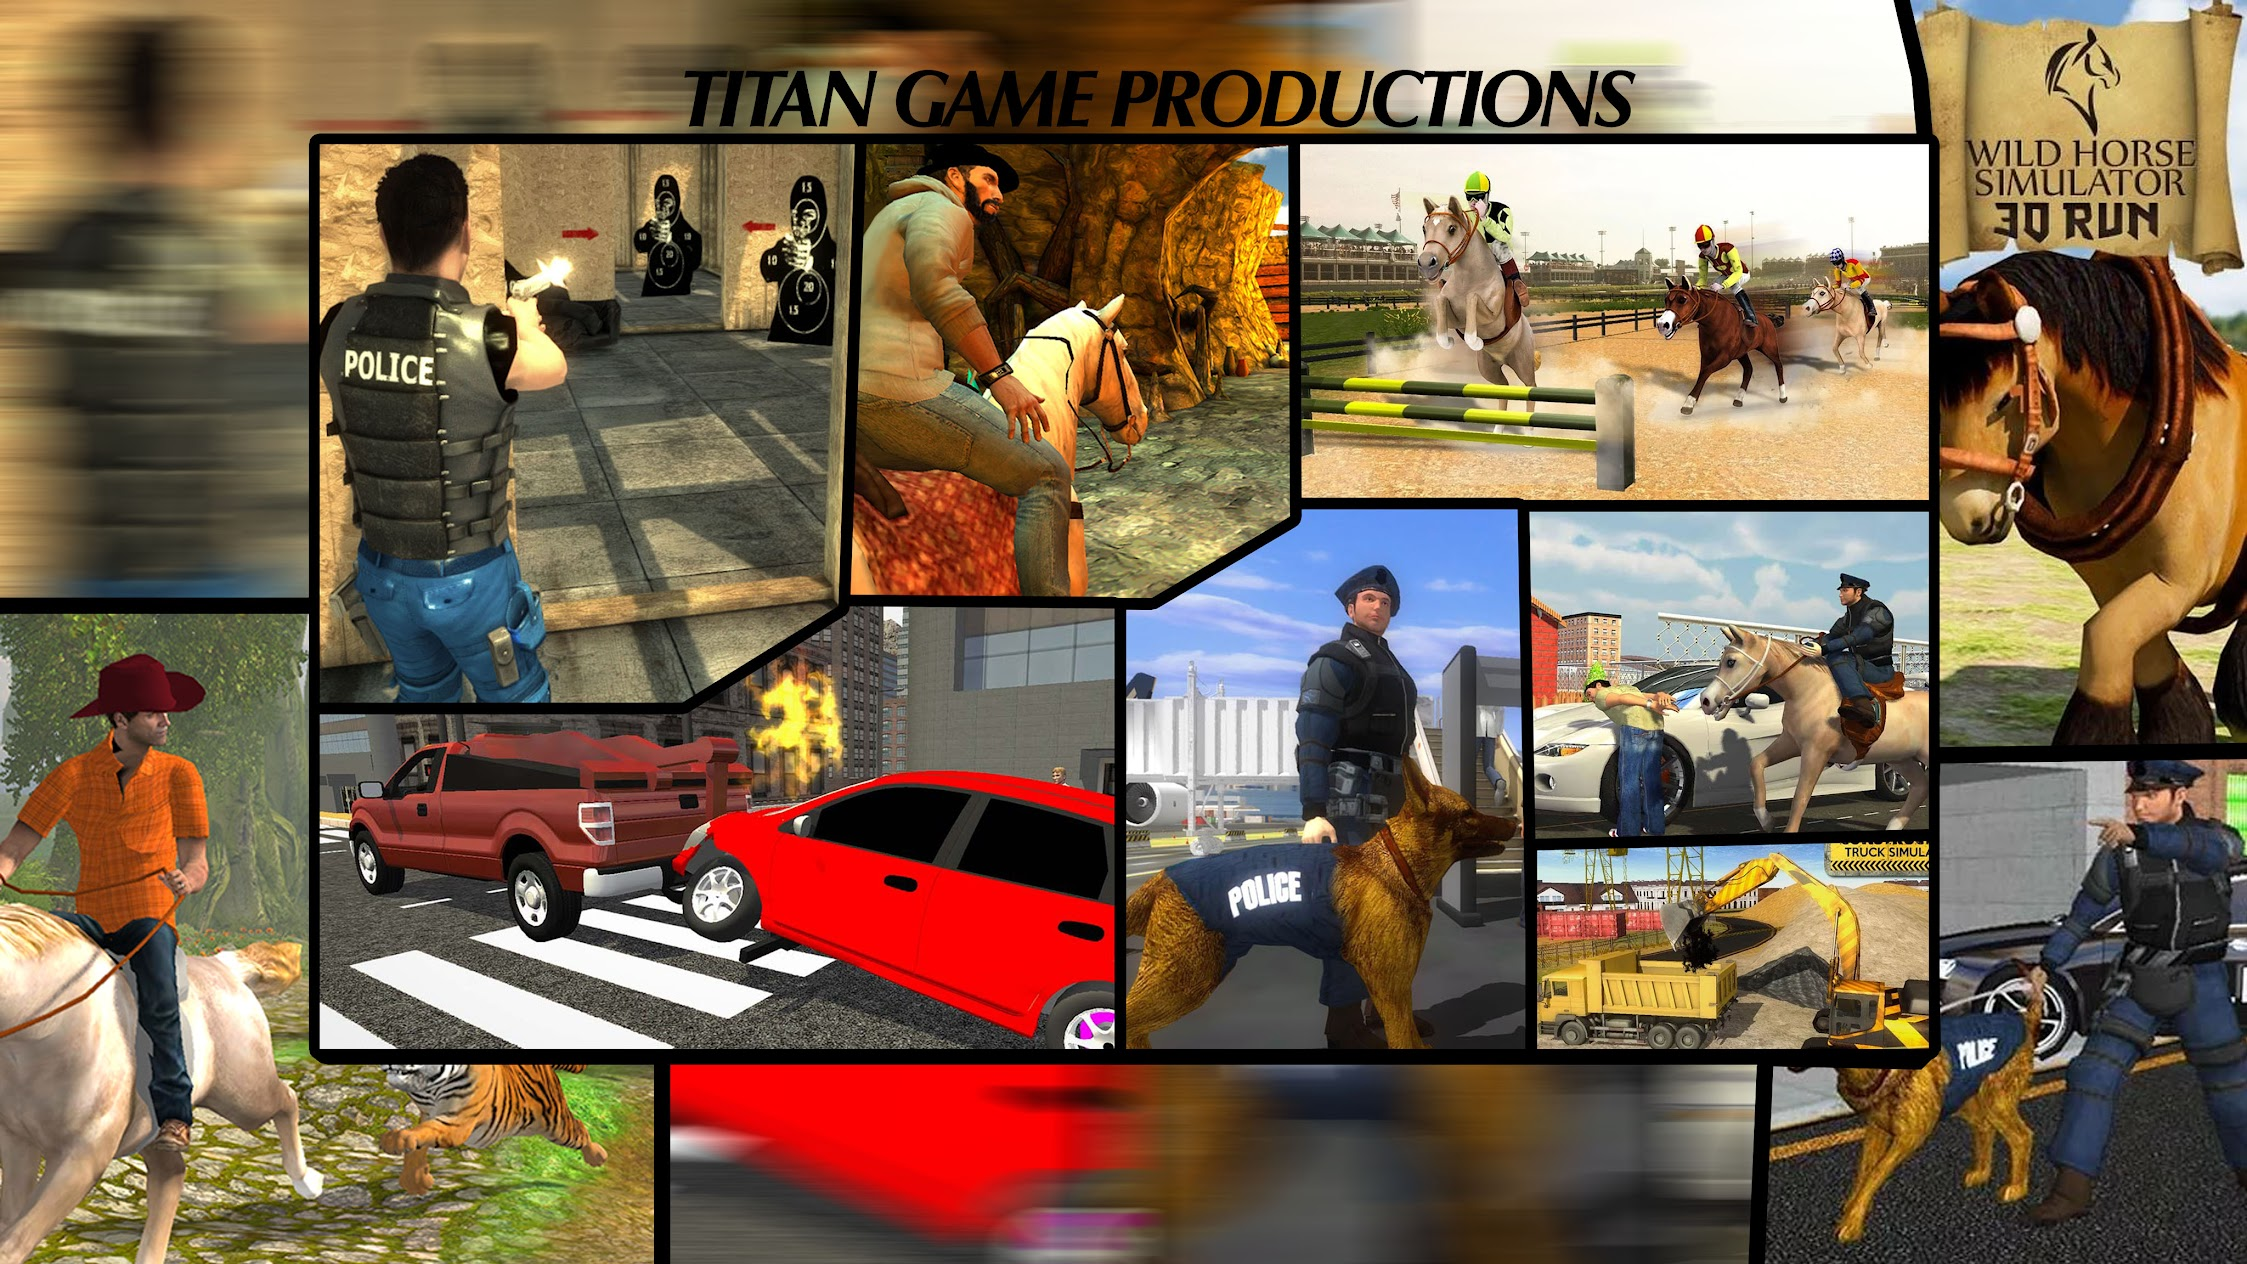 Titan Game Productions